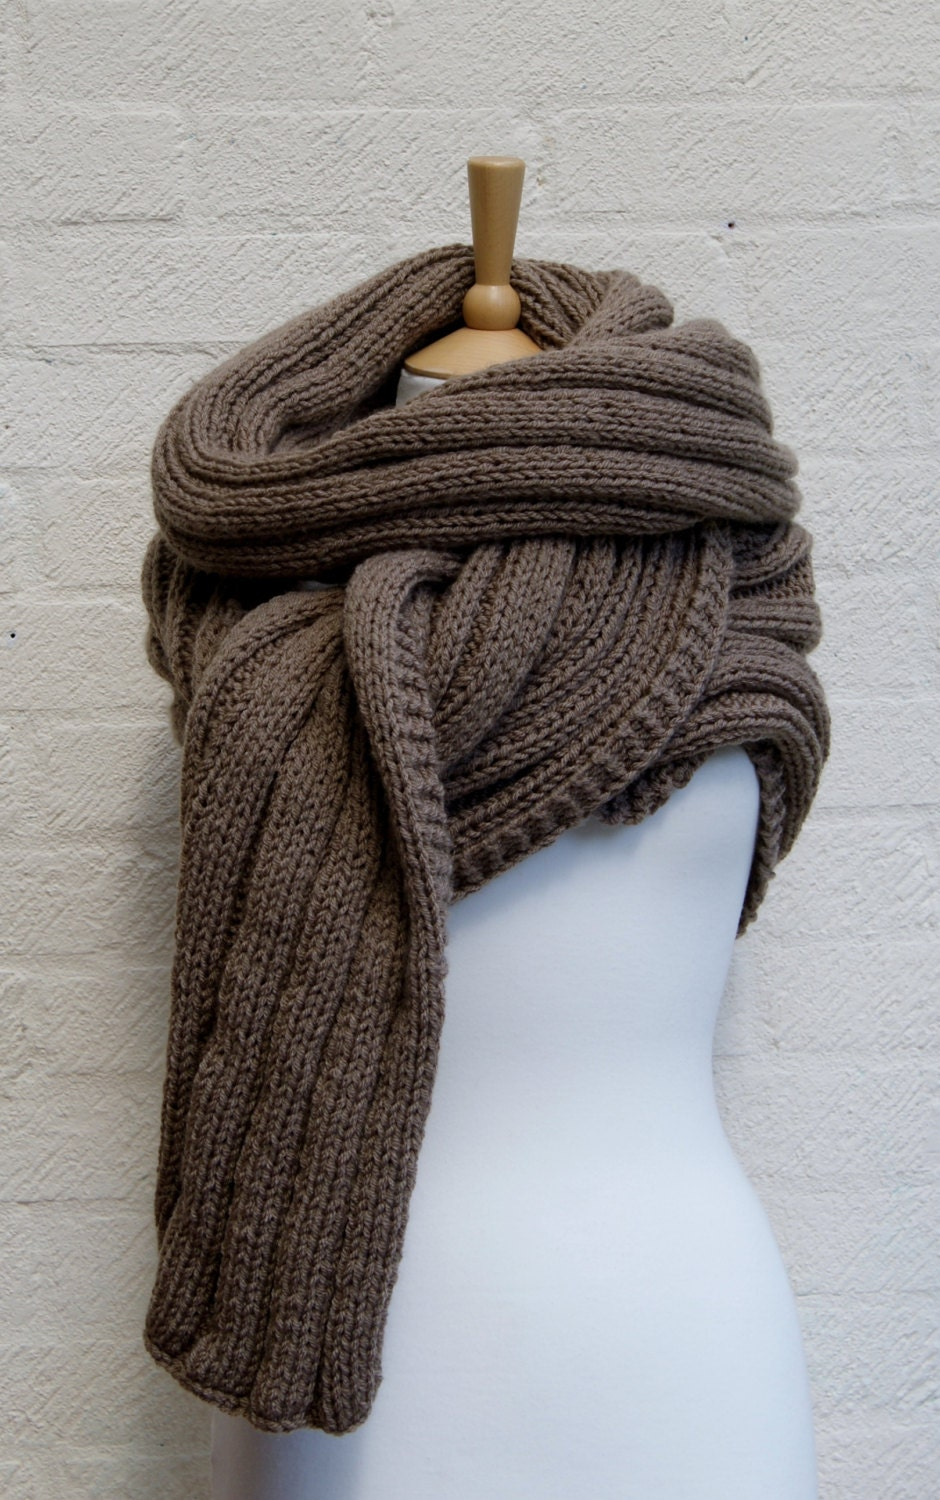 Knitting Chunky Scarf : Extra long scarf in walnut chunky knit knitted wrap